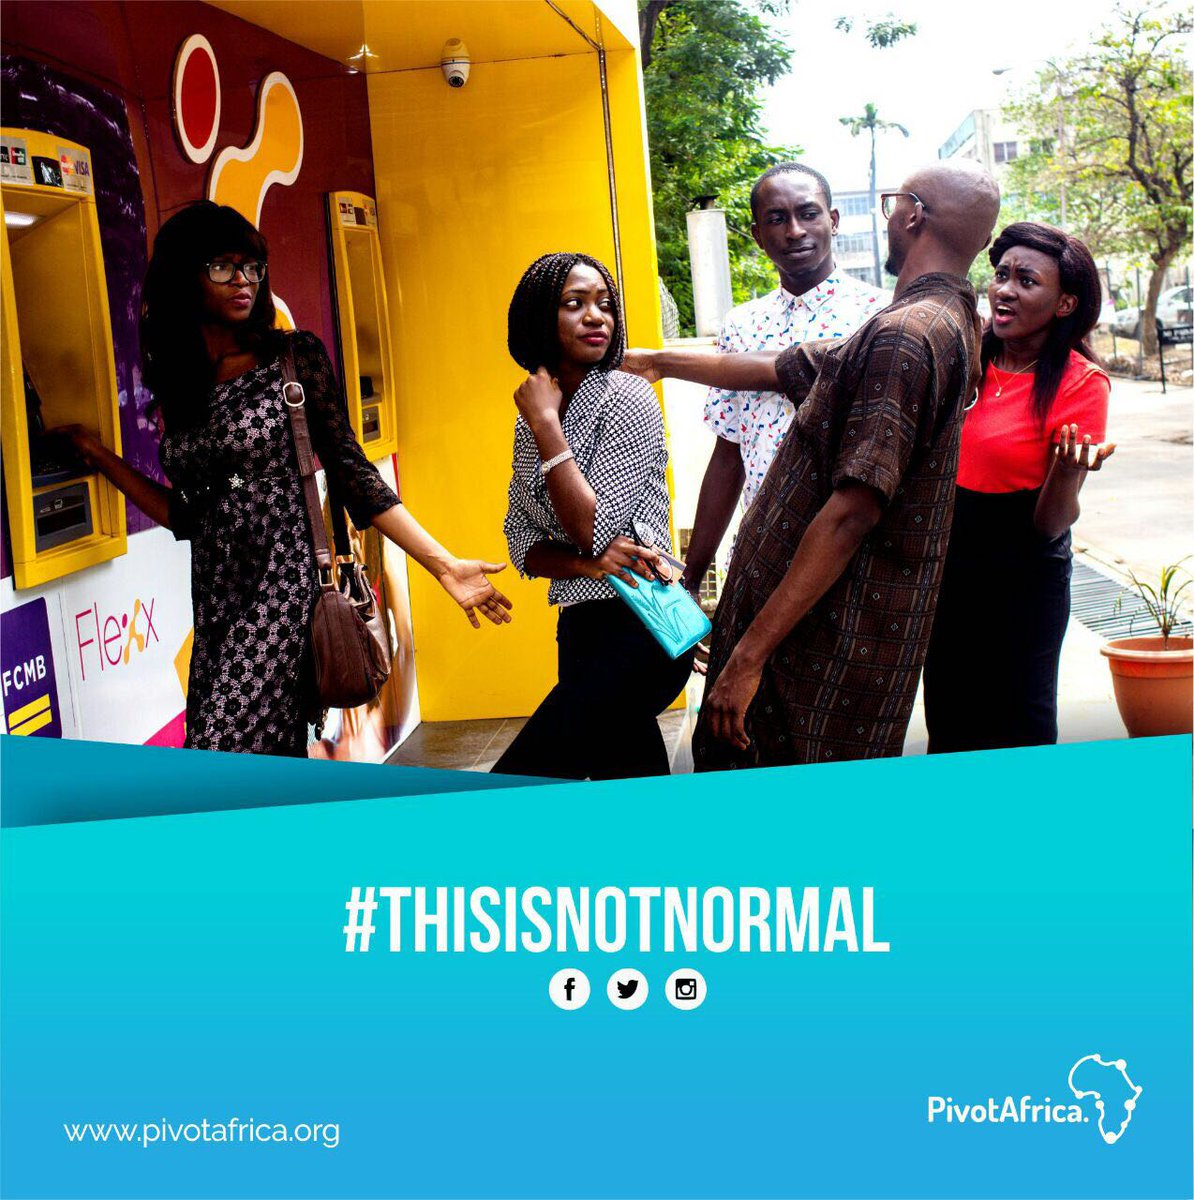 It starts in less than 3 hours! #ThisIsNotNormal Let&#39;s talk about the societal attitudes that are not okay. <br>http://pic.twitter.com/OzHPFdSsNL